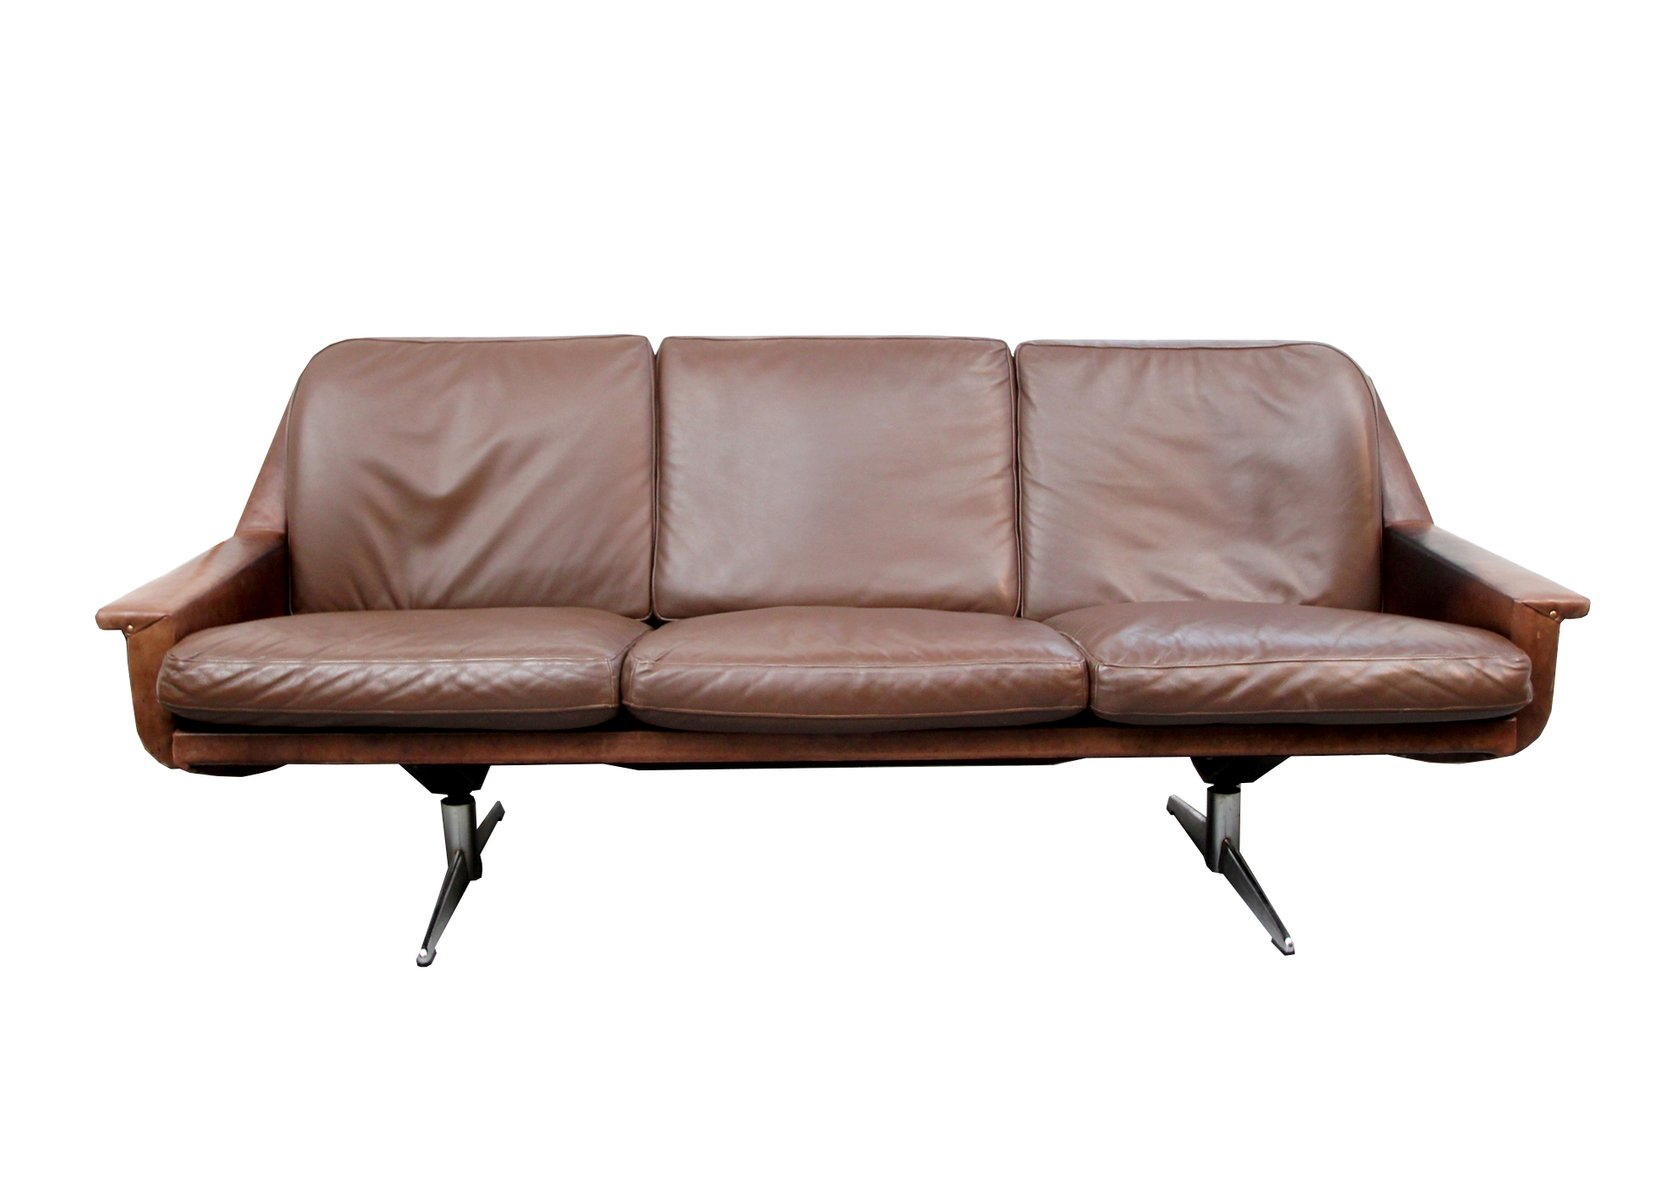 Vintage german leather three seater sofa for sale at pamono for Sofa 7 seater